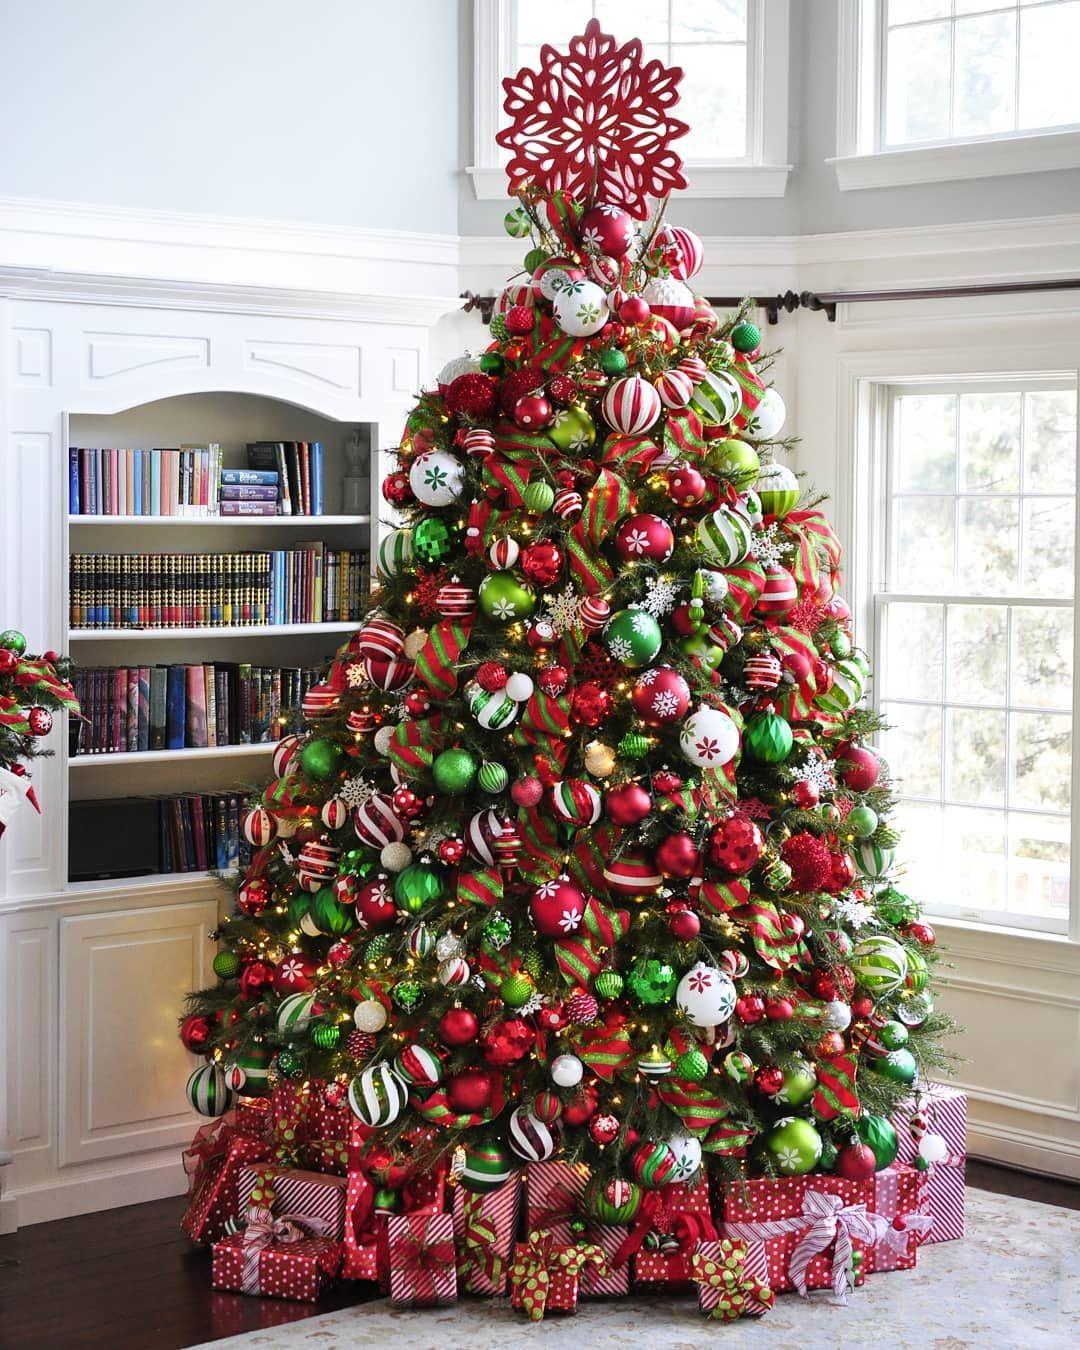 Merry Christmas This Is An All Natural 11 Foot Douglas Fir Bedecked In As Much With Images Red Christmas Tree Green Christmas Tree Decorations Christmas Tree Inspiration